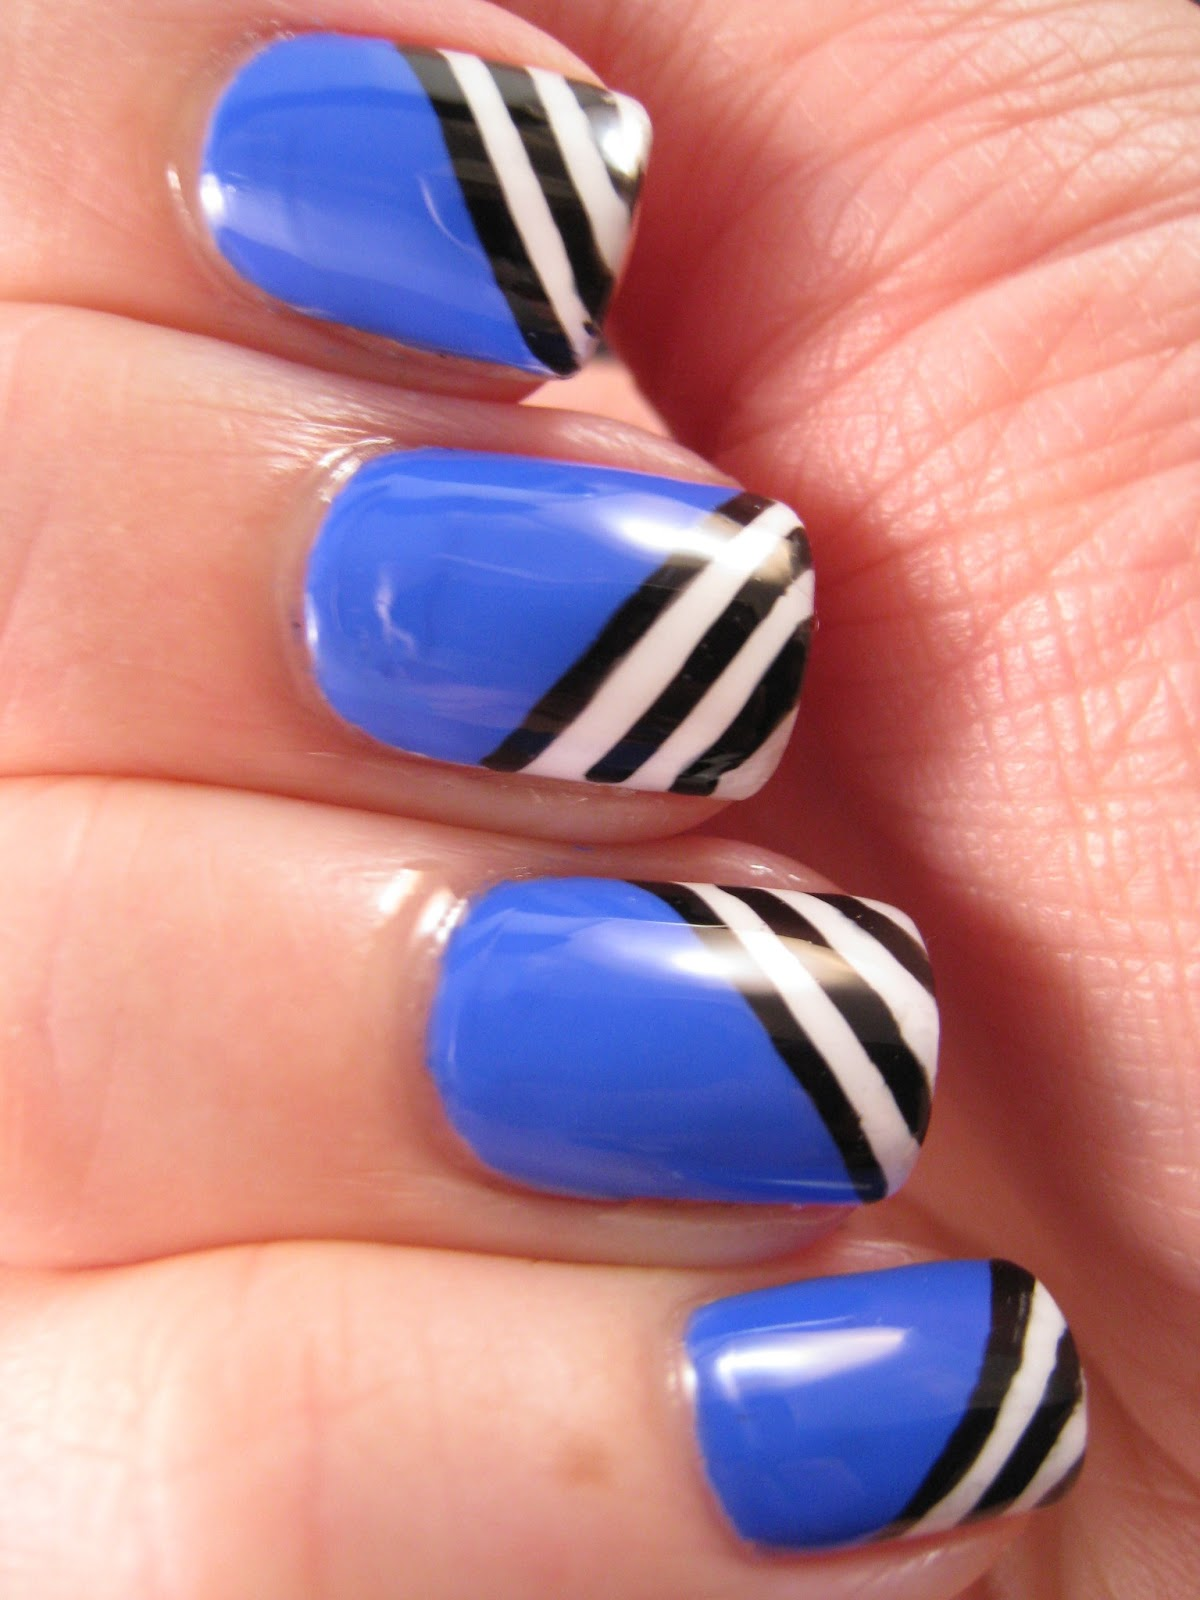 Naily perfect black and white stripes over blue my mind blue my mind black and white stripes nail prinsesfo Choice Image